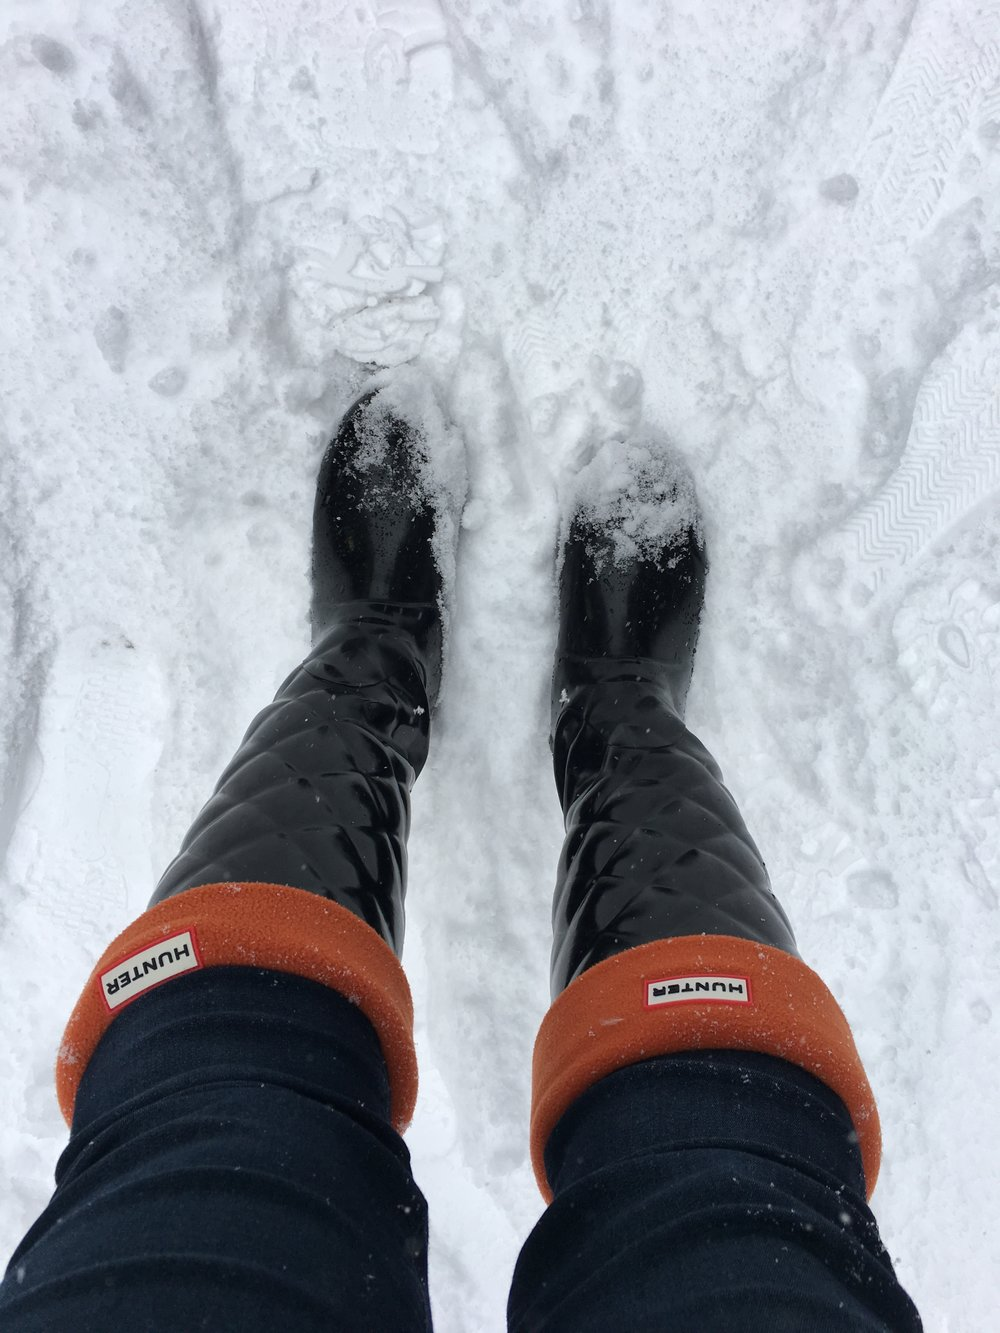 I highly recommend boot liners/warmers. I bought them to keep me warm in the snow and they were the best things I've ever bought!